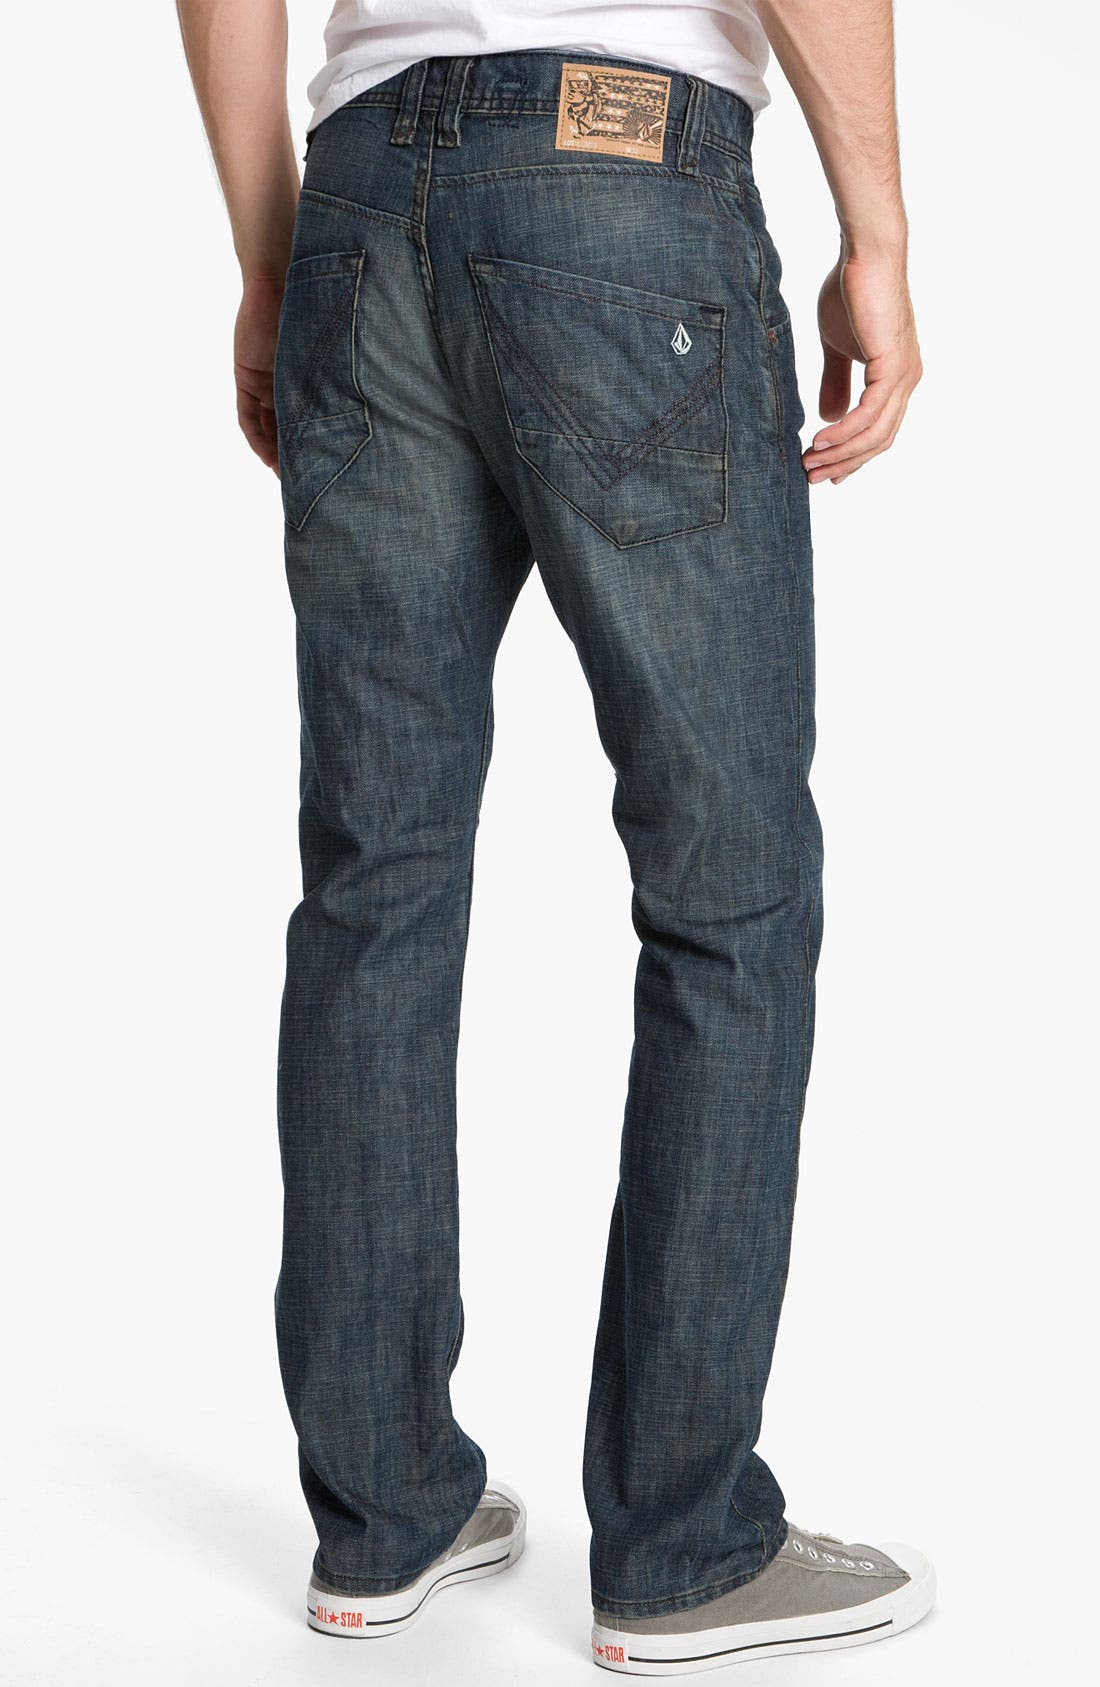 Alternate Image 1 Selected - Volcom 'Nova' Slim Straight Leg Jeans (Naz) (Online Only)